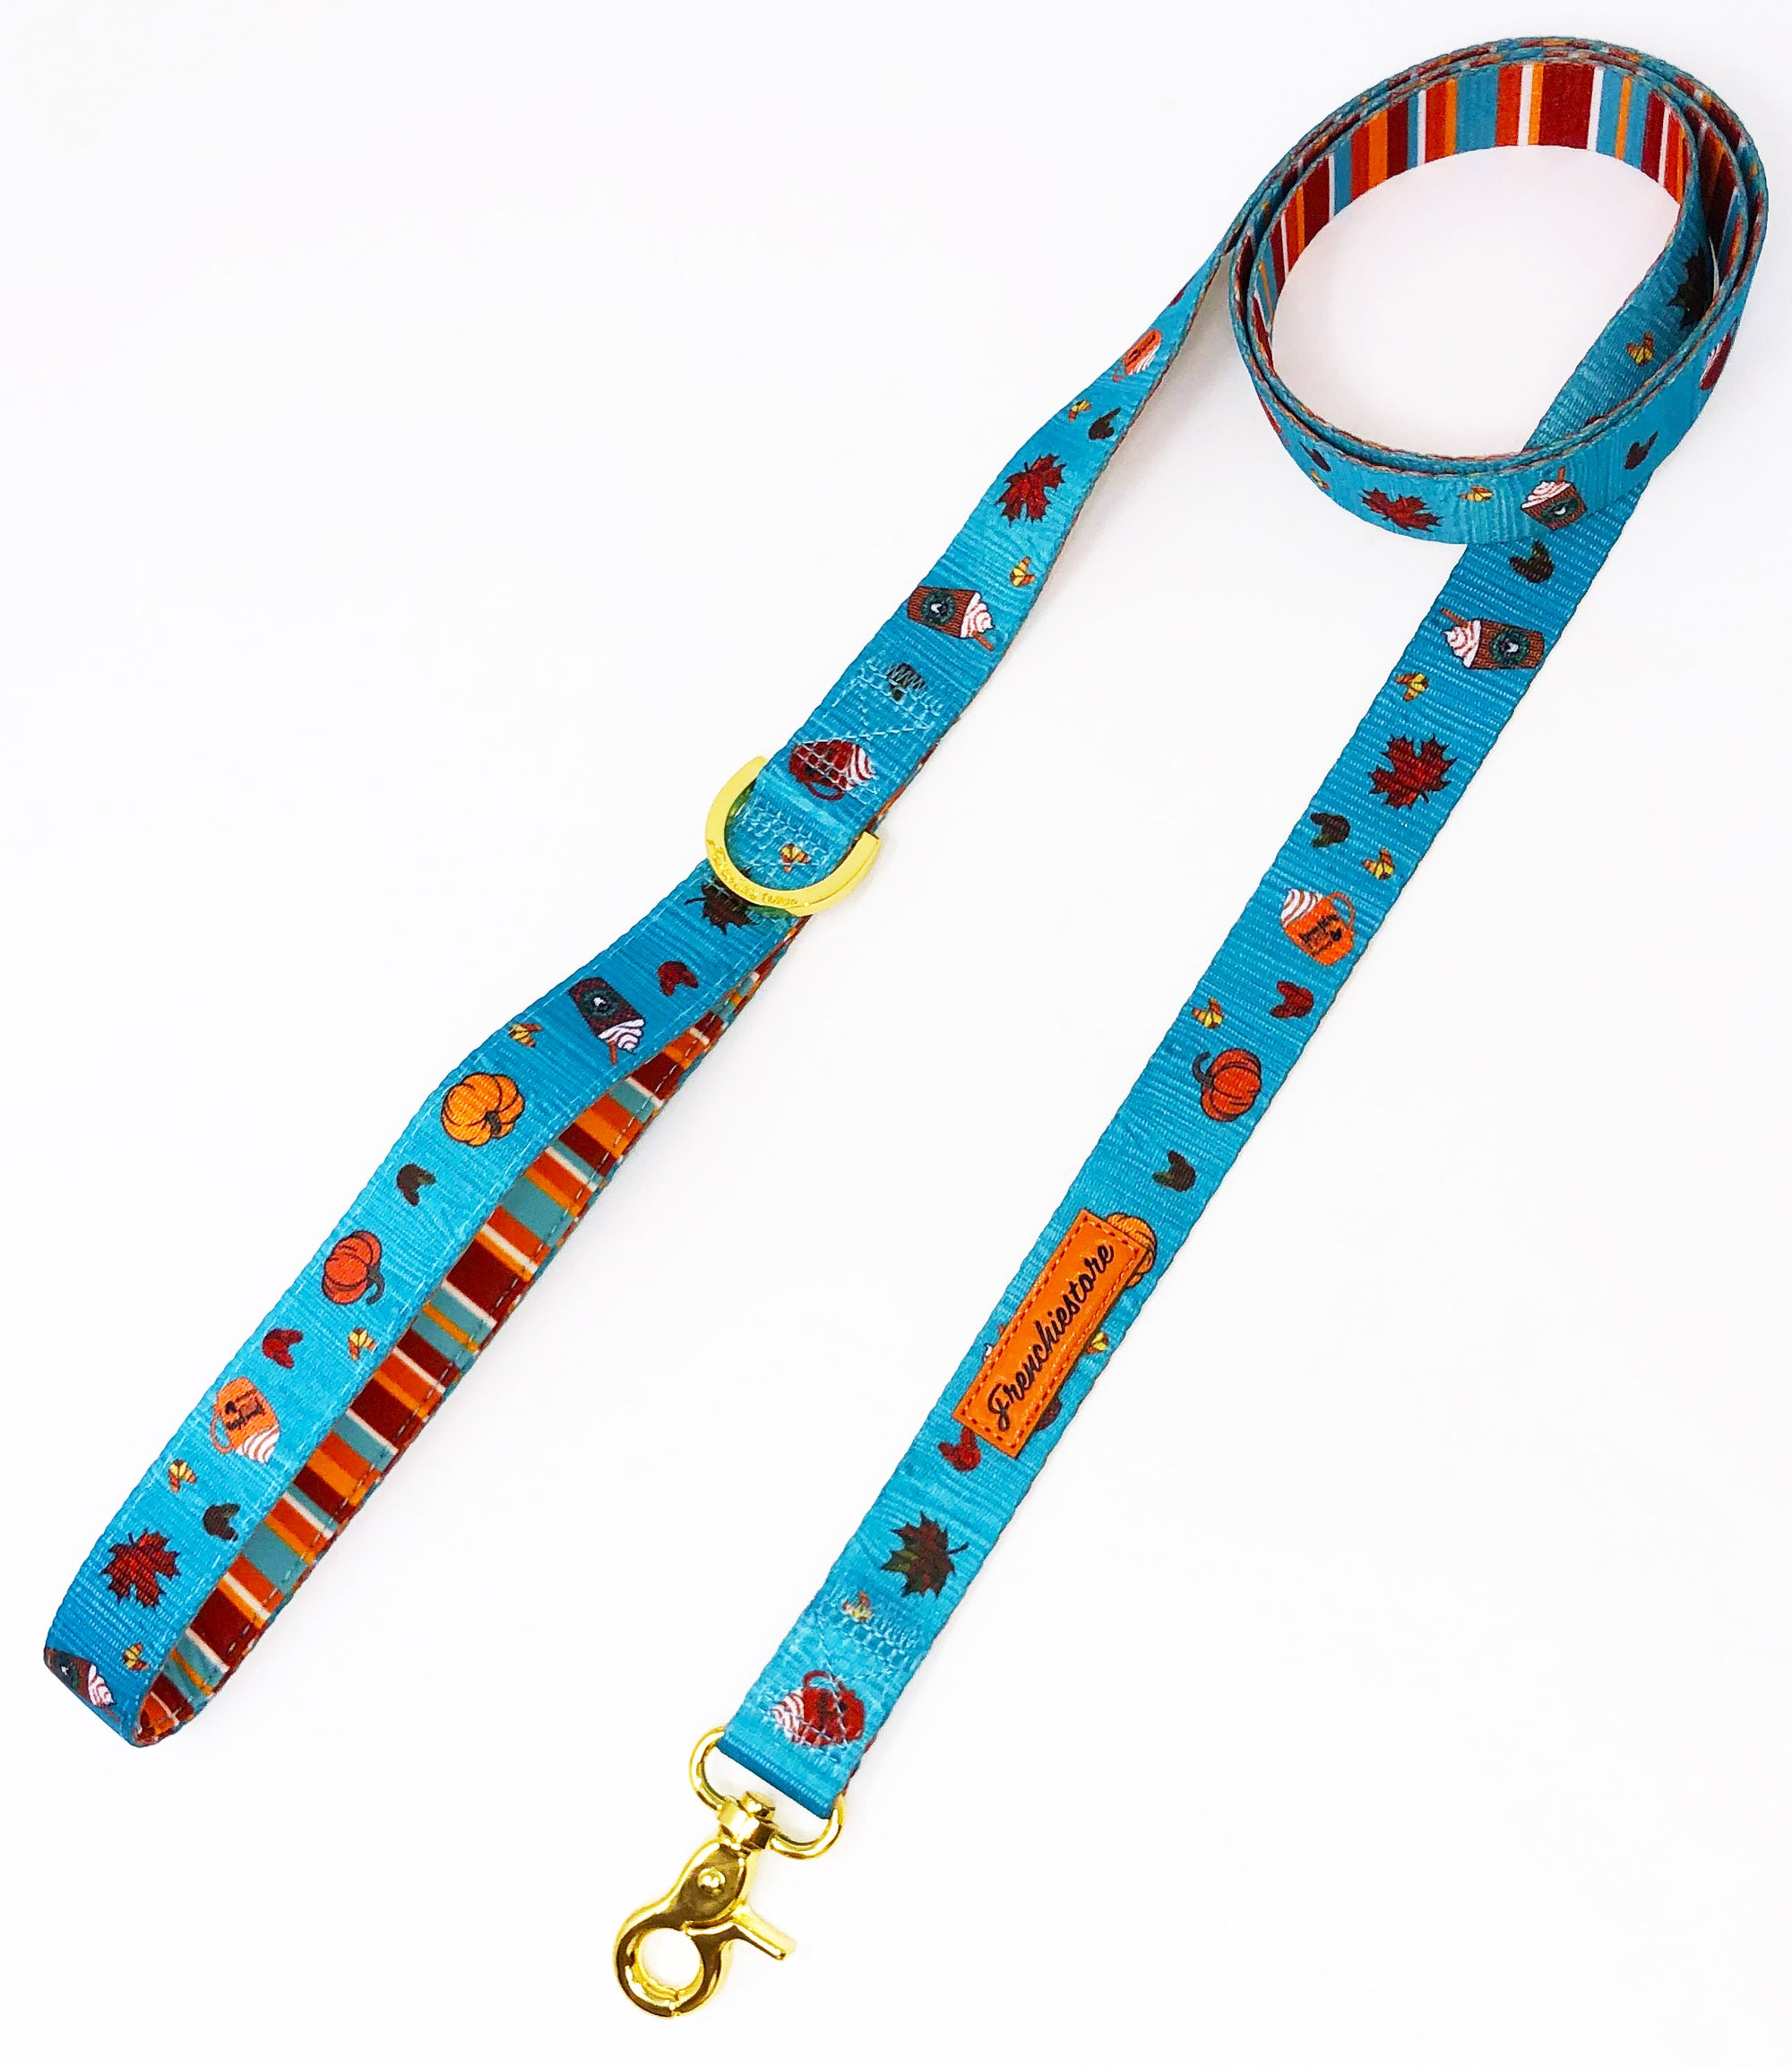 Frenchiestore Luxury Leash | Pumpkin Spice Pupcup, Frenchie Dog, French Bulldog pet products